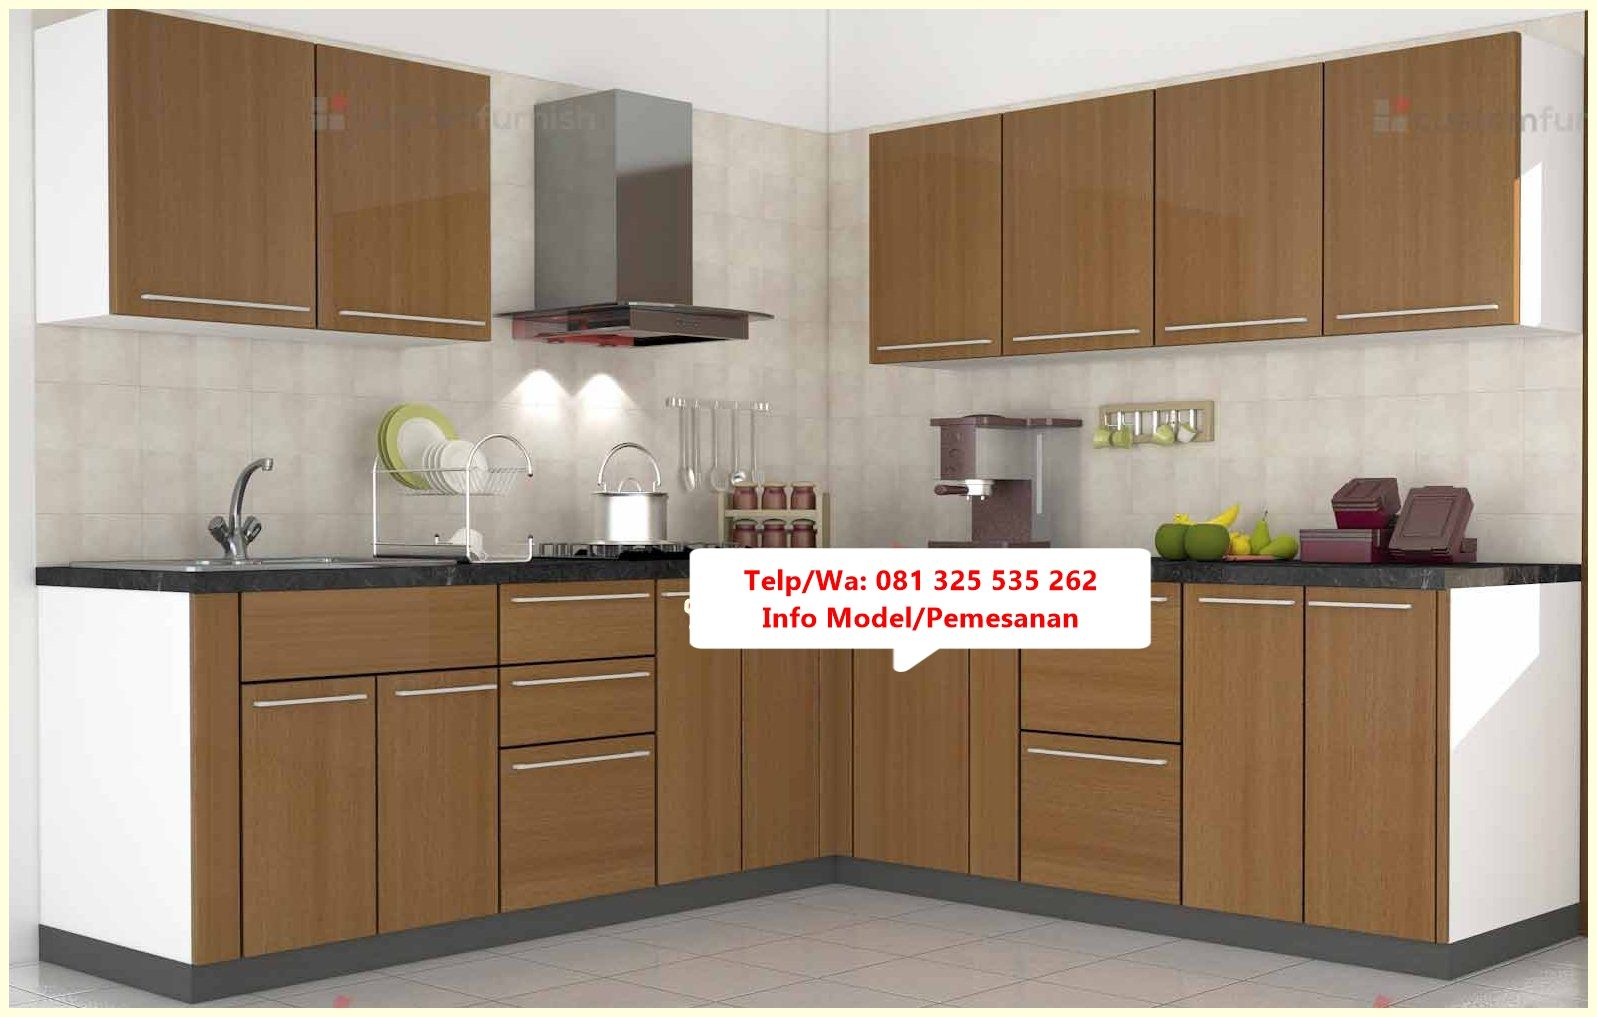 Desain Kitchen Set Jati Minimalis Trend Mo Kitchen Set Jati